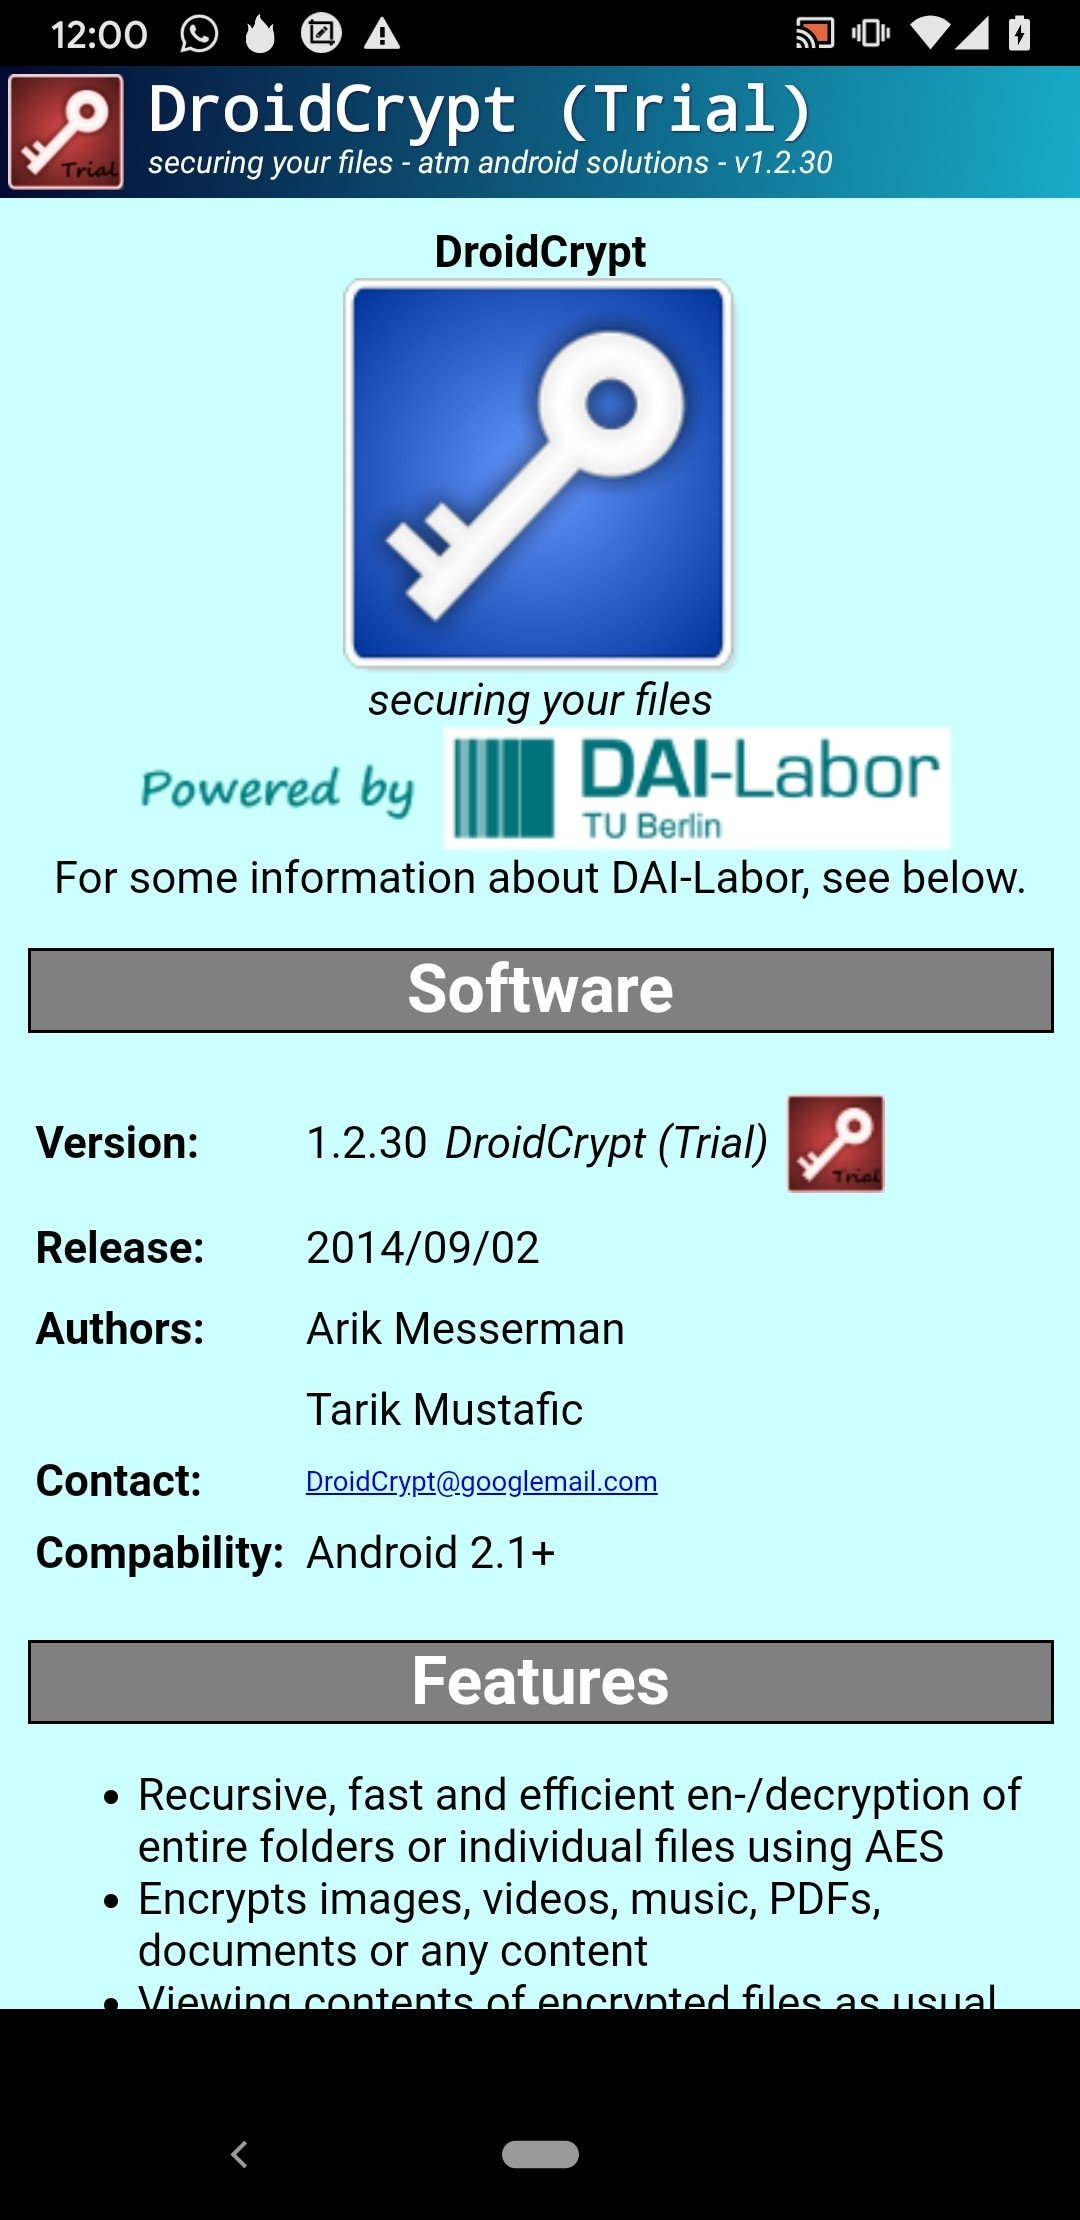 Droid Crypt Android image 5